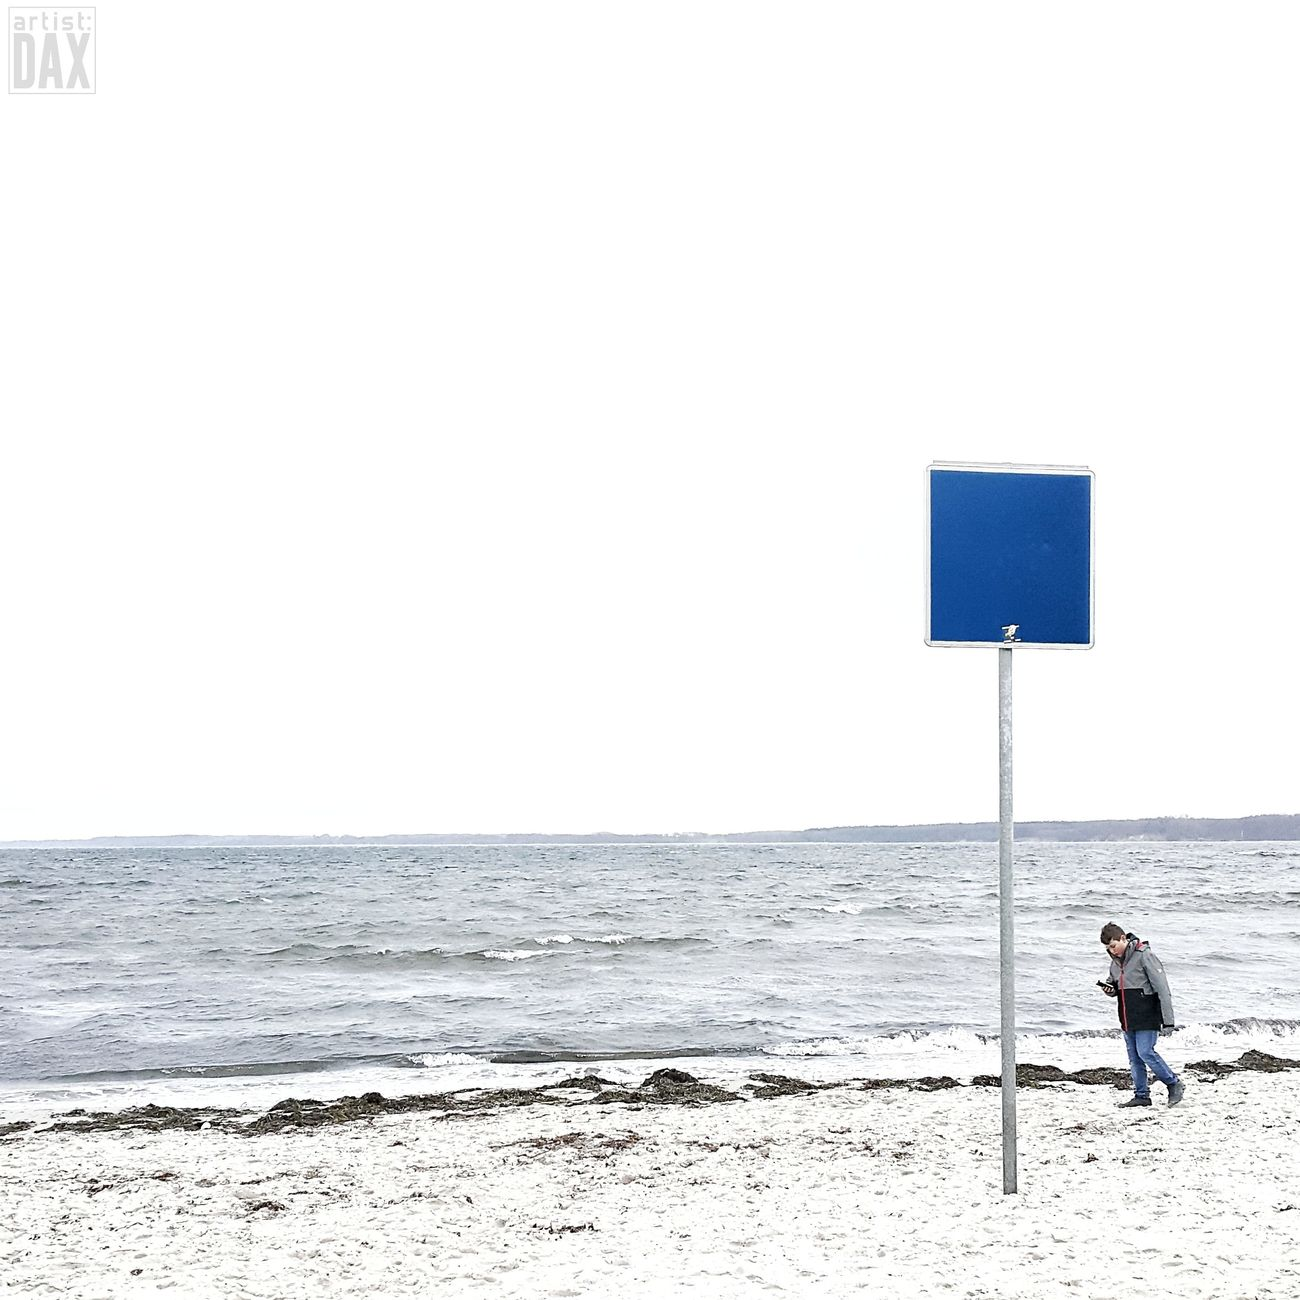 Blue sign with smombie artist:DAX PHOTOGRAPHOHOLIC I born to capture | Sea Beach Outdoors One Person Day People One Man Only Minimalplanet Germany 🇩🇪 Deutschland EyeEm Gallery ArtistDAX Simplicity Minimalmood Minimalism Photography Simple Elegance Real People Germany Schleswig-Holstein Water Nature Landscape At The Seaside Ostseestrand Ostseeküste